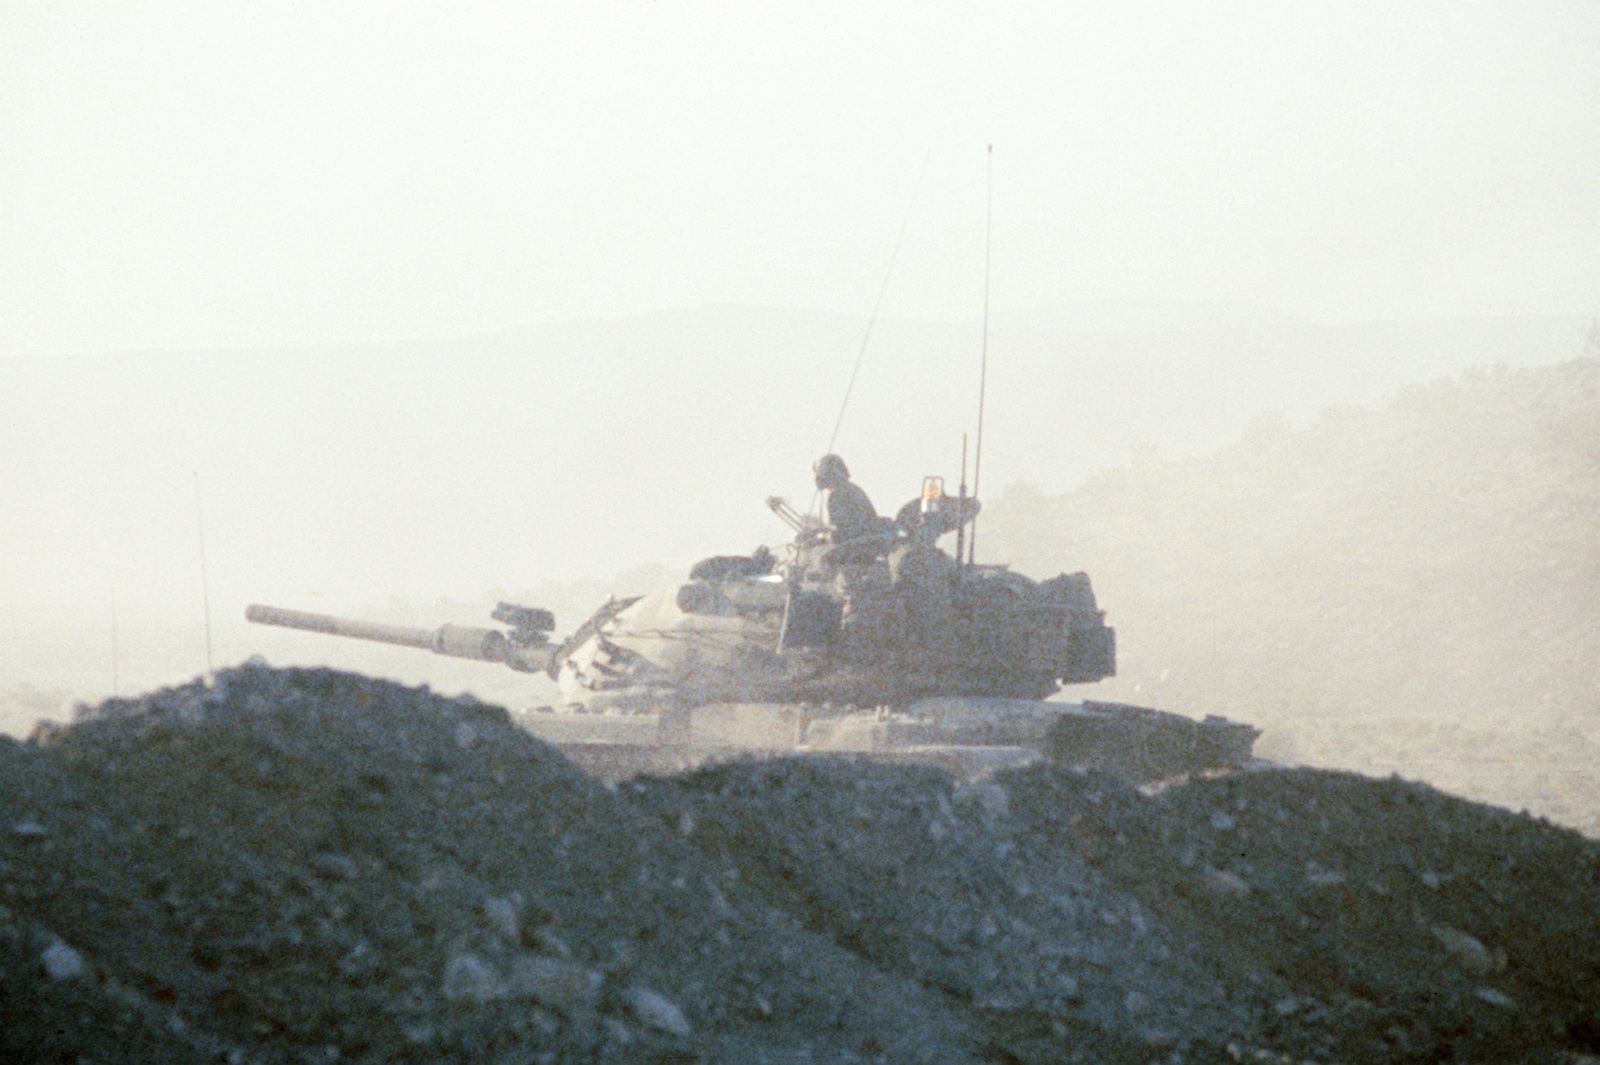 An M60 tank, modified to resemble a Soviet T72 tank, participates in an exercise at the National Training Center